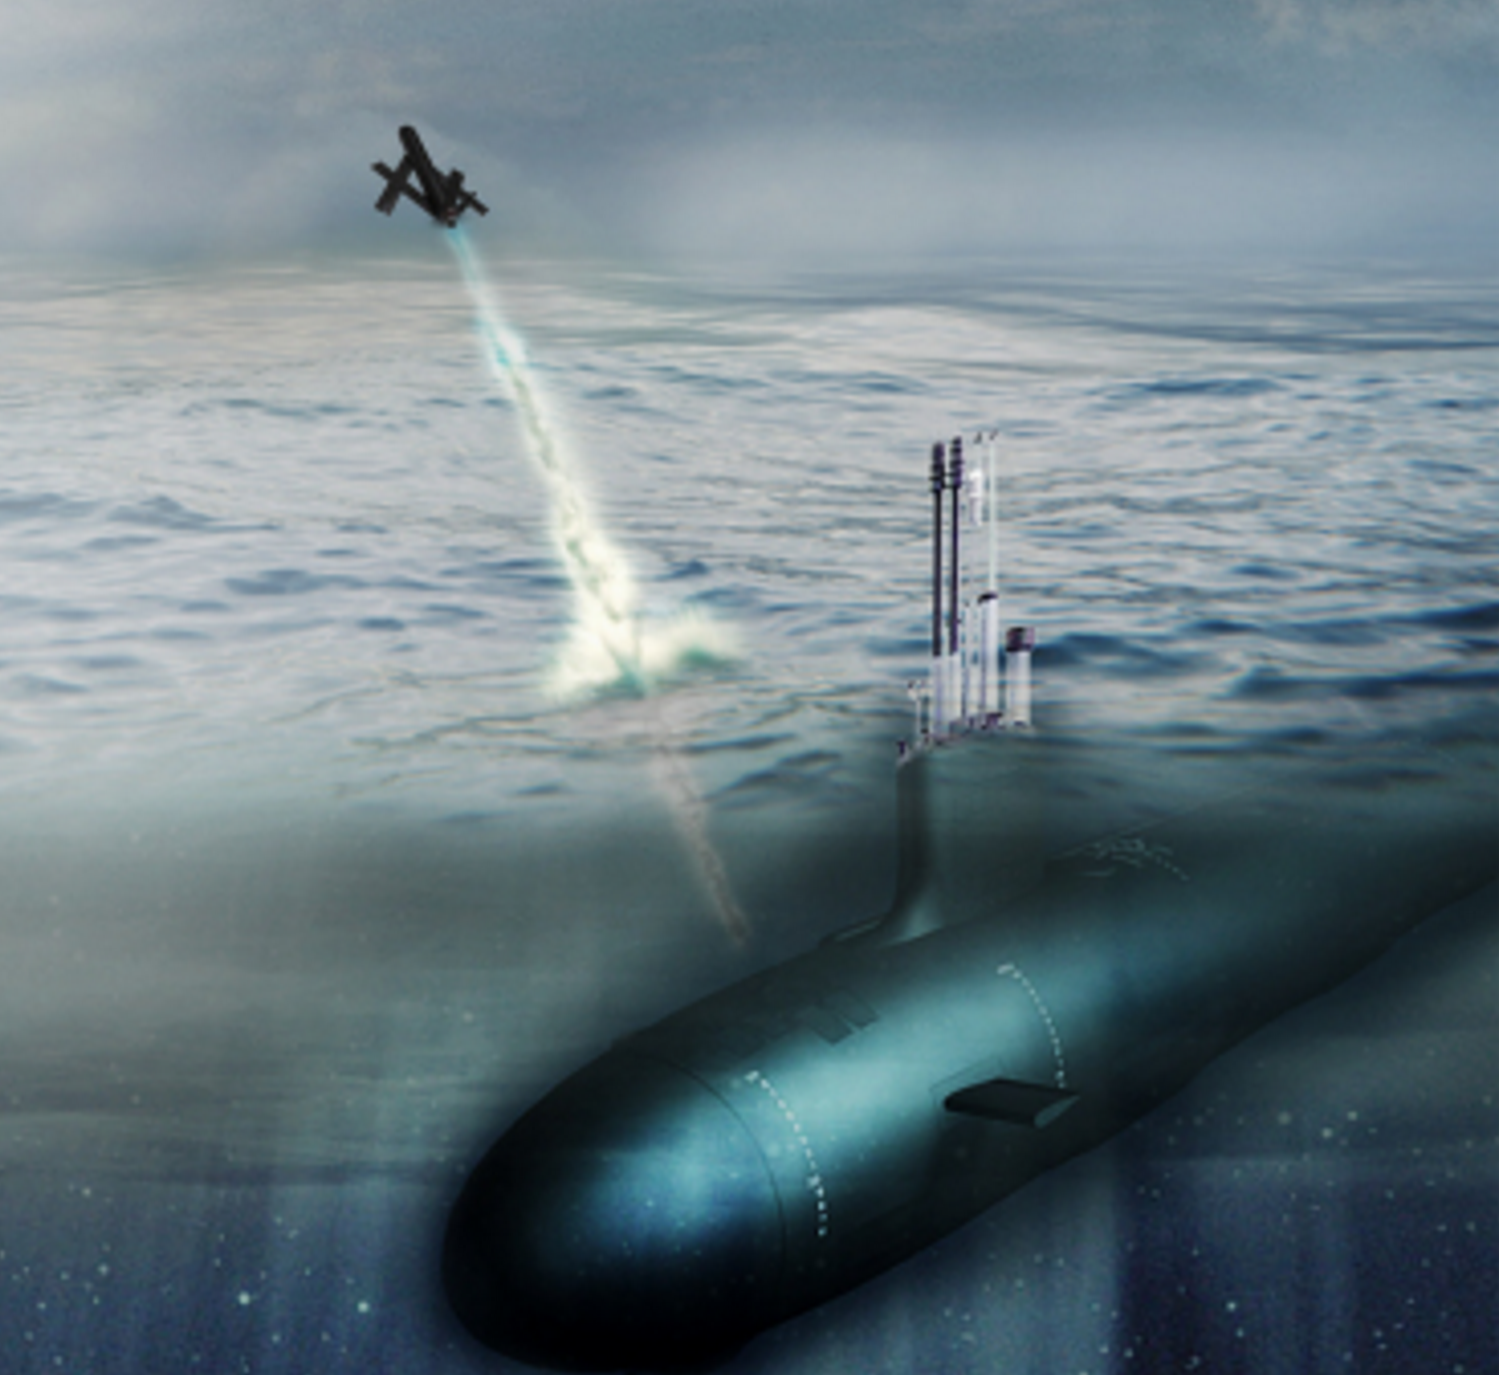 Artist's concept of a U.S. Navy submarines launching a Blackwing UAV. AeroVironment Image